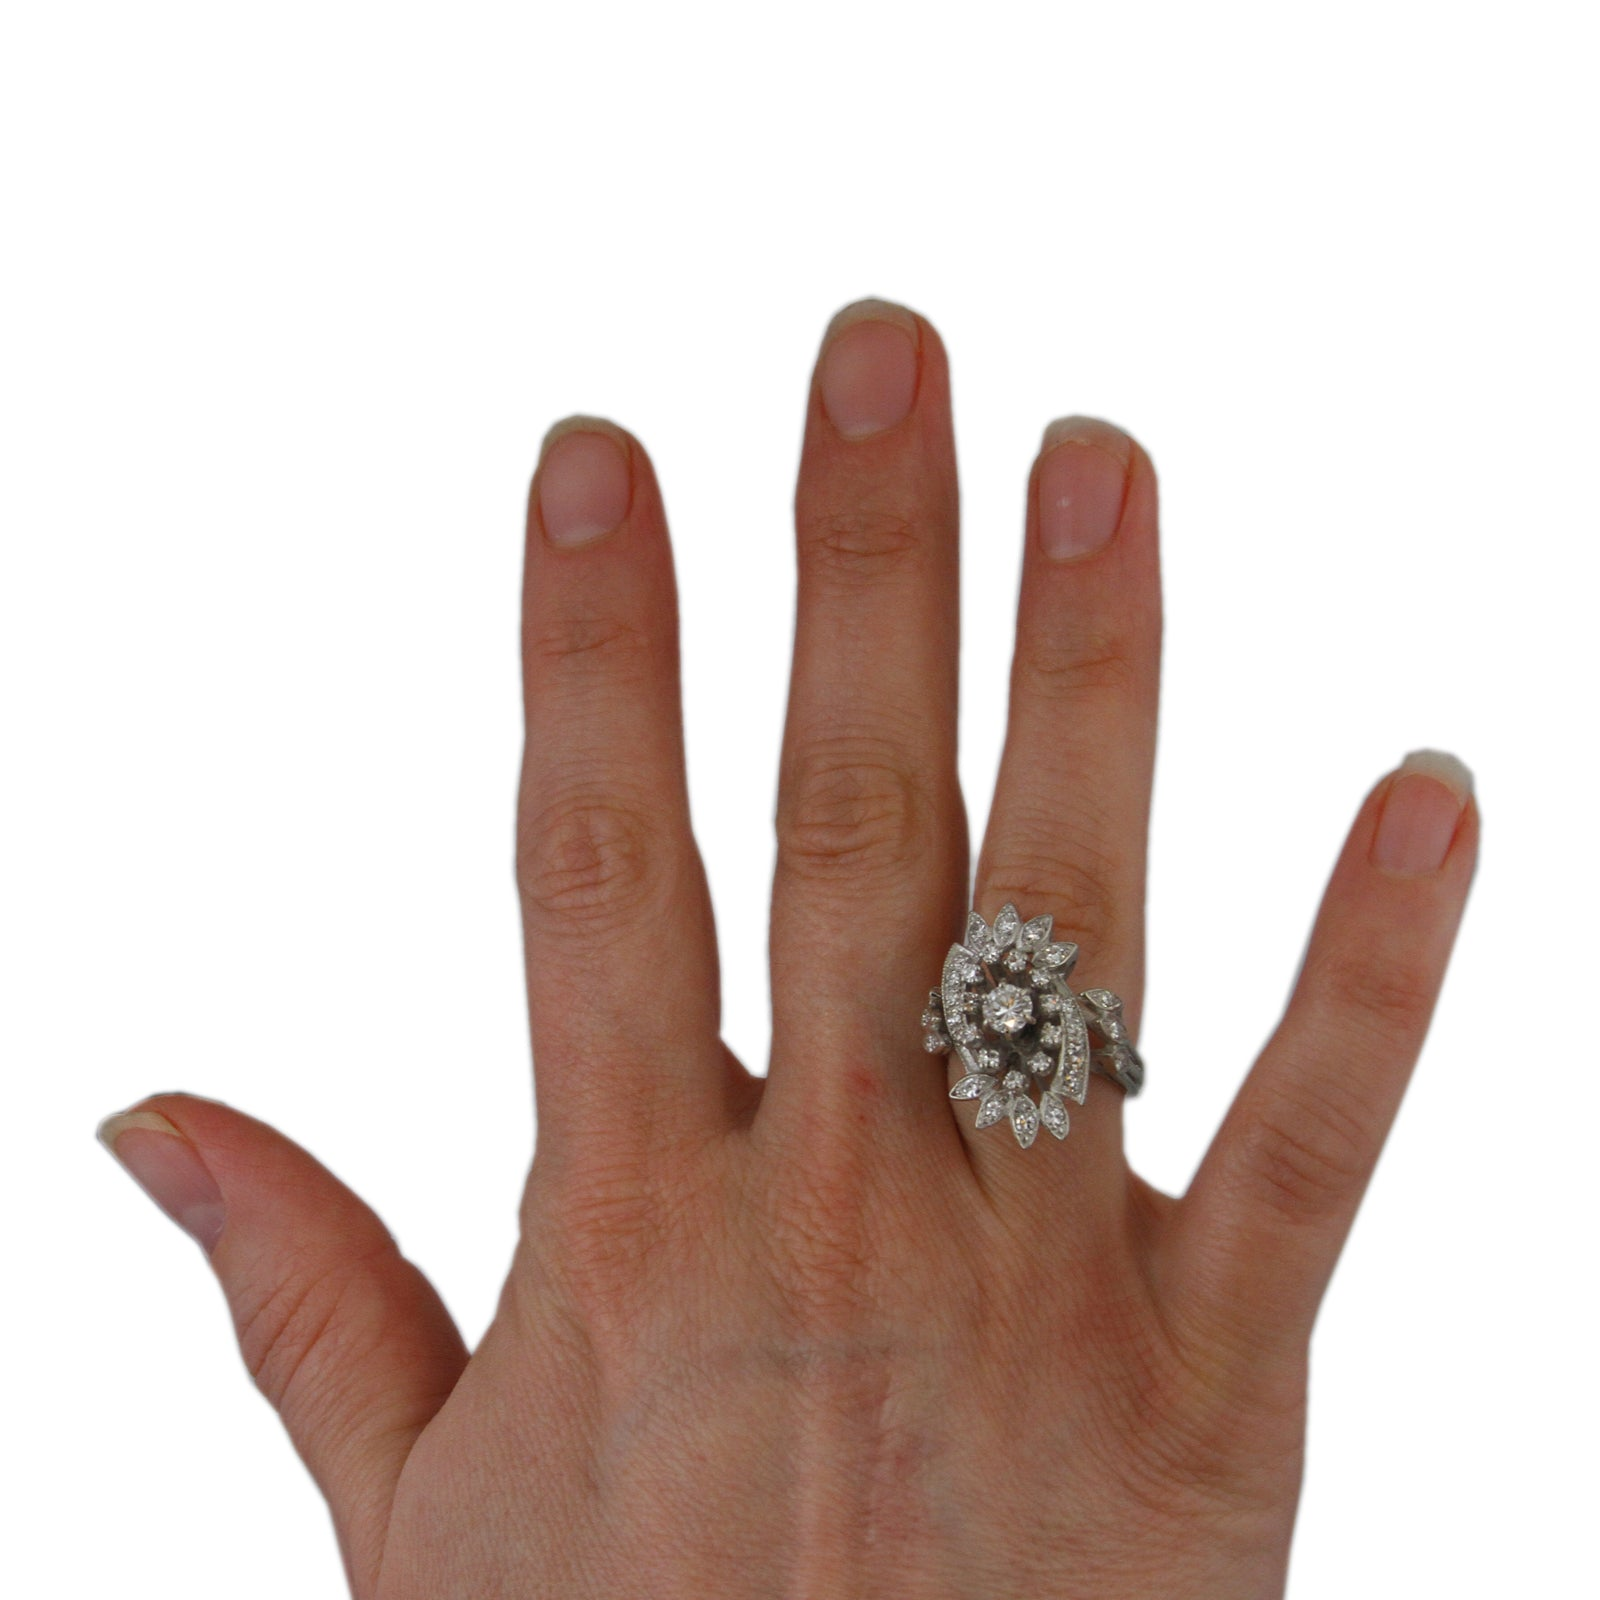 Antique Diamond Ring with Single Cut Diamond Accents & Fancy Oblong Mounting in White Gold